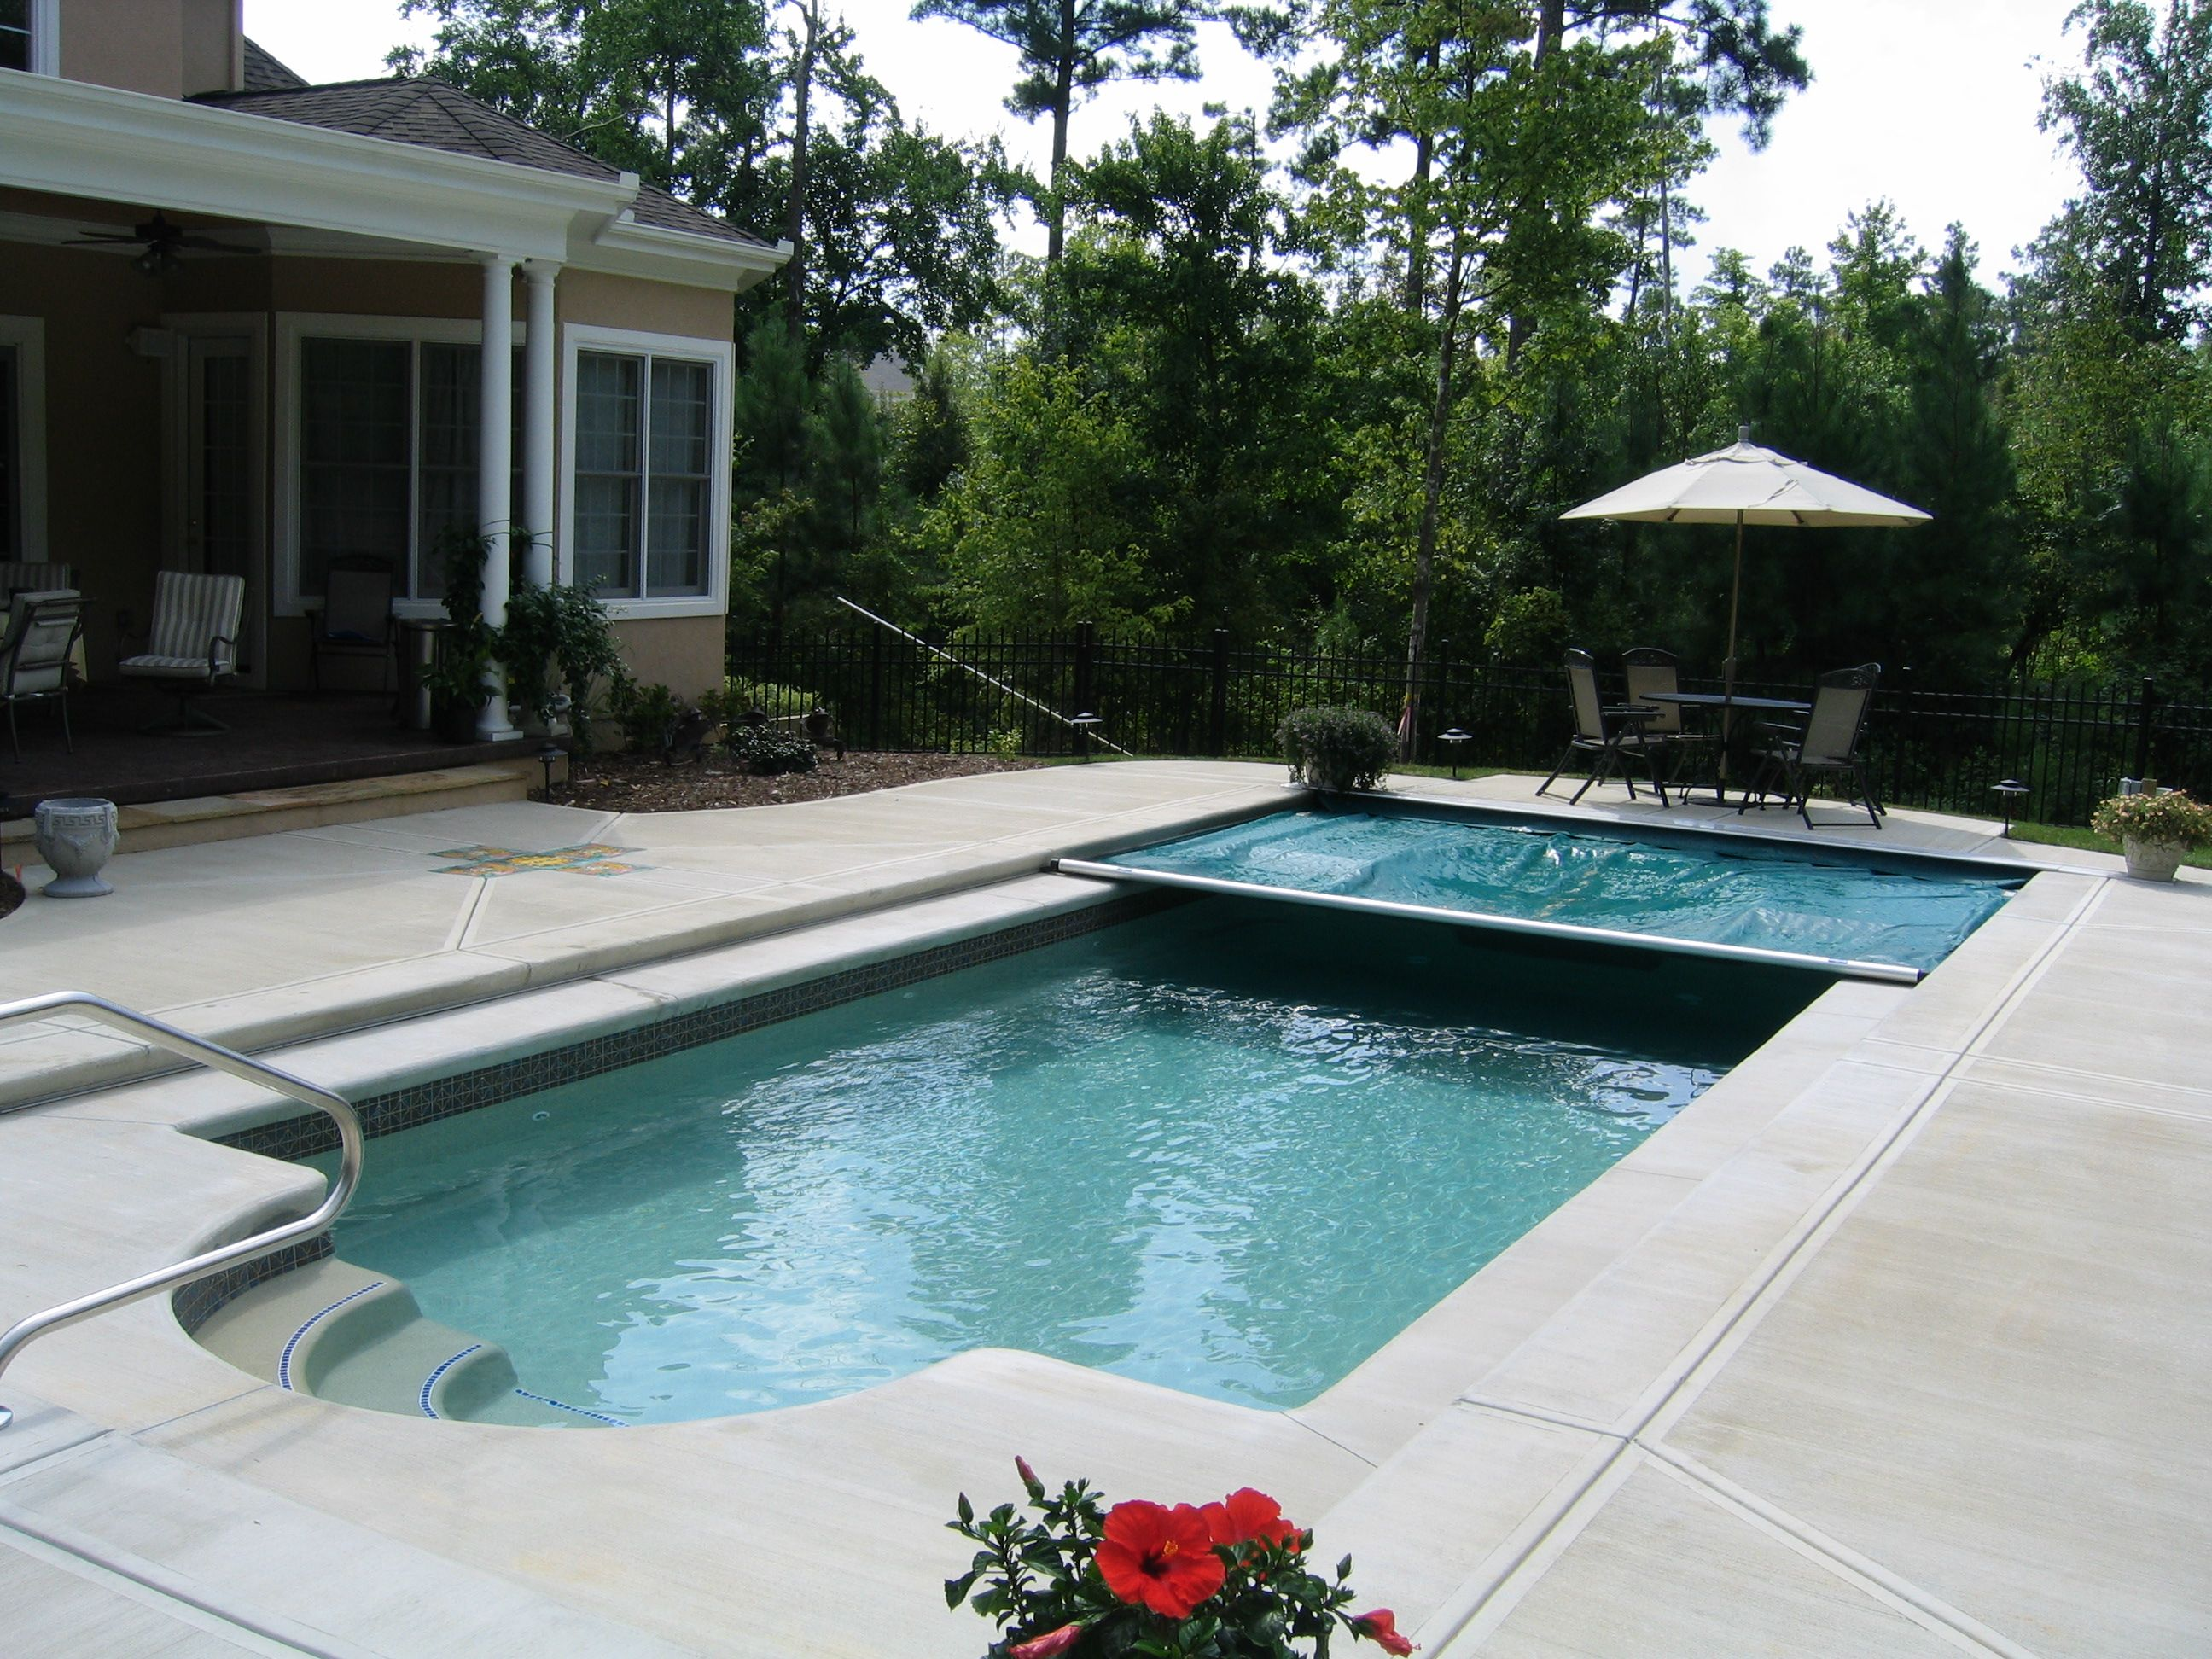 Fiberglass inground pool with pool cover partially unfurled